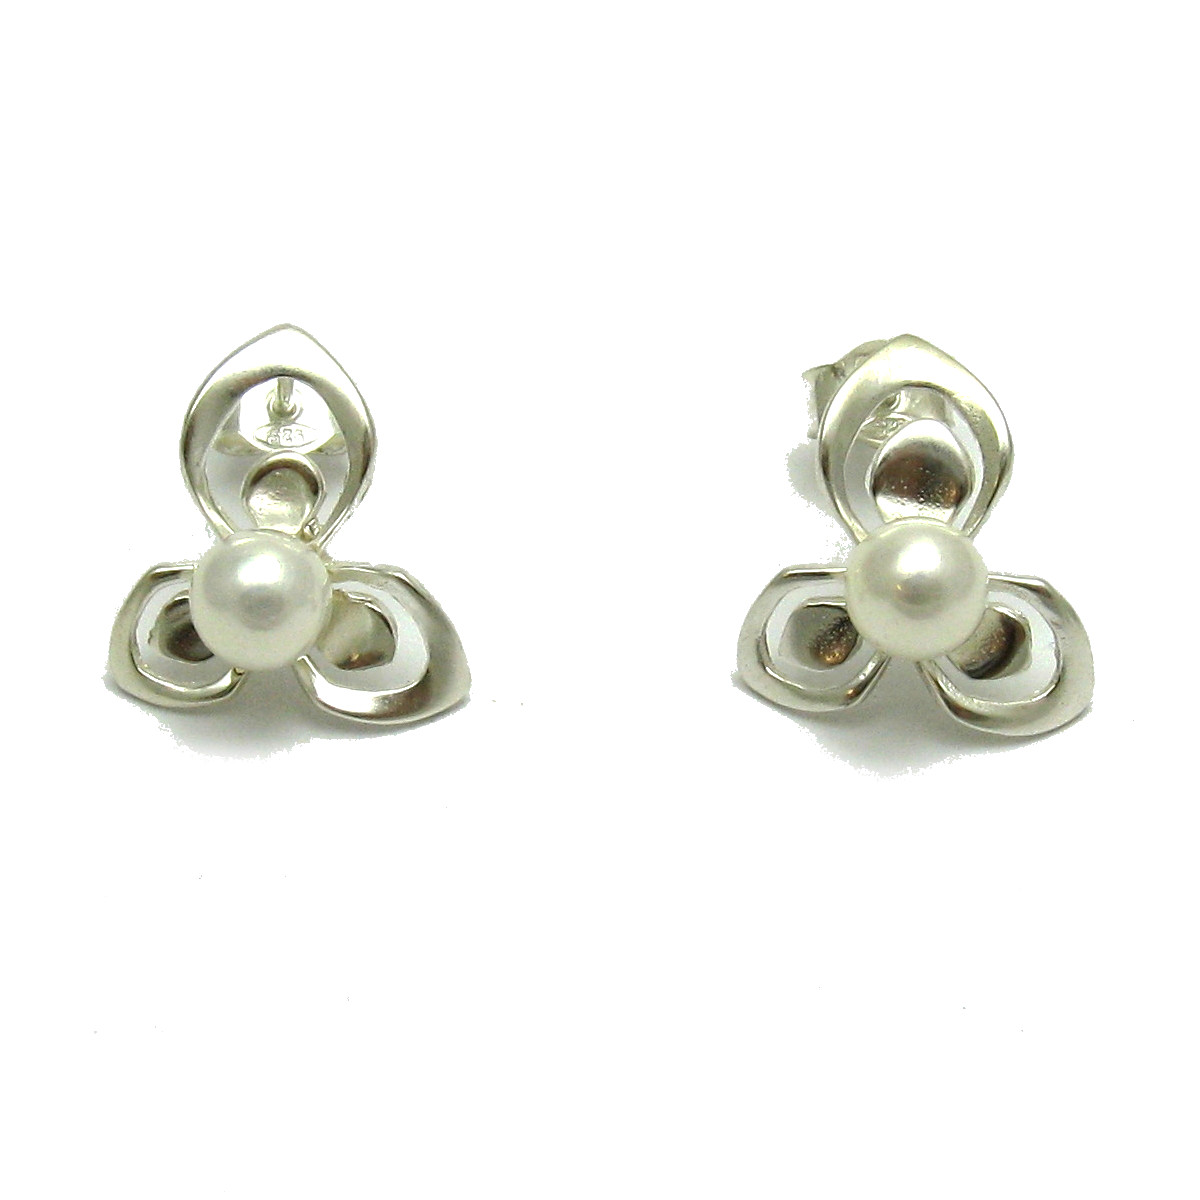 Silver earrings - E000672